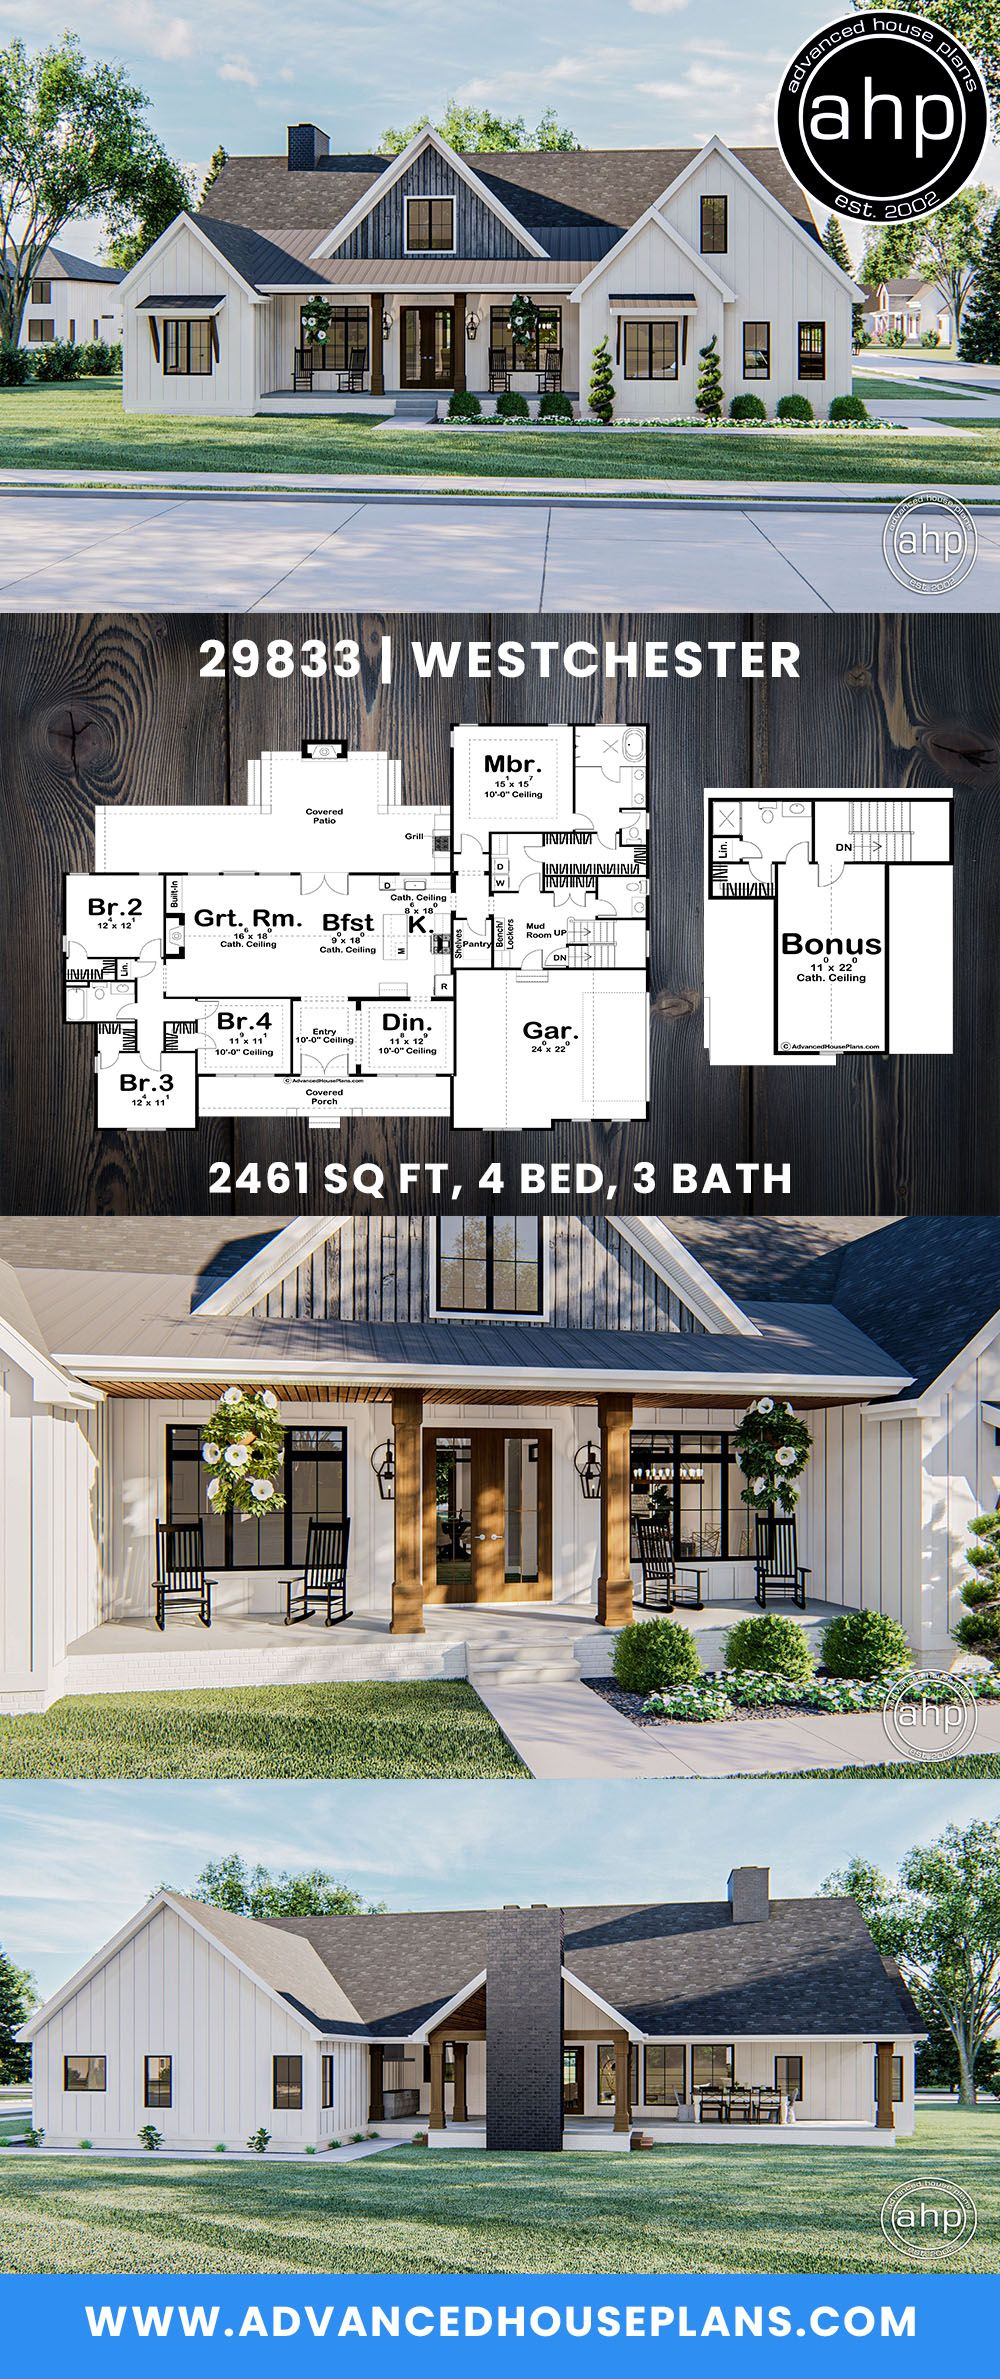 1 Story Modern Farmhouse Style Plan Westchester In 2020 Farmhouse Style House Plans House Plans Farmhouse Farmhouse Style House